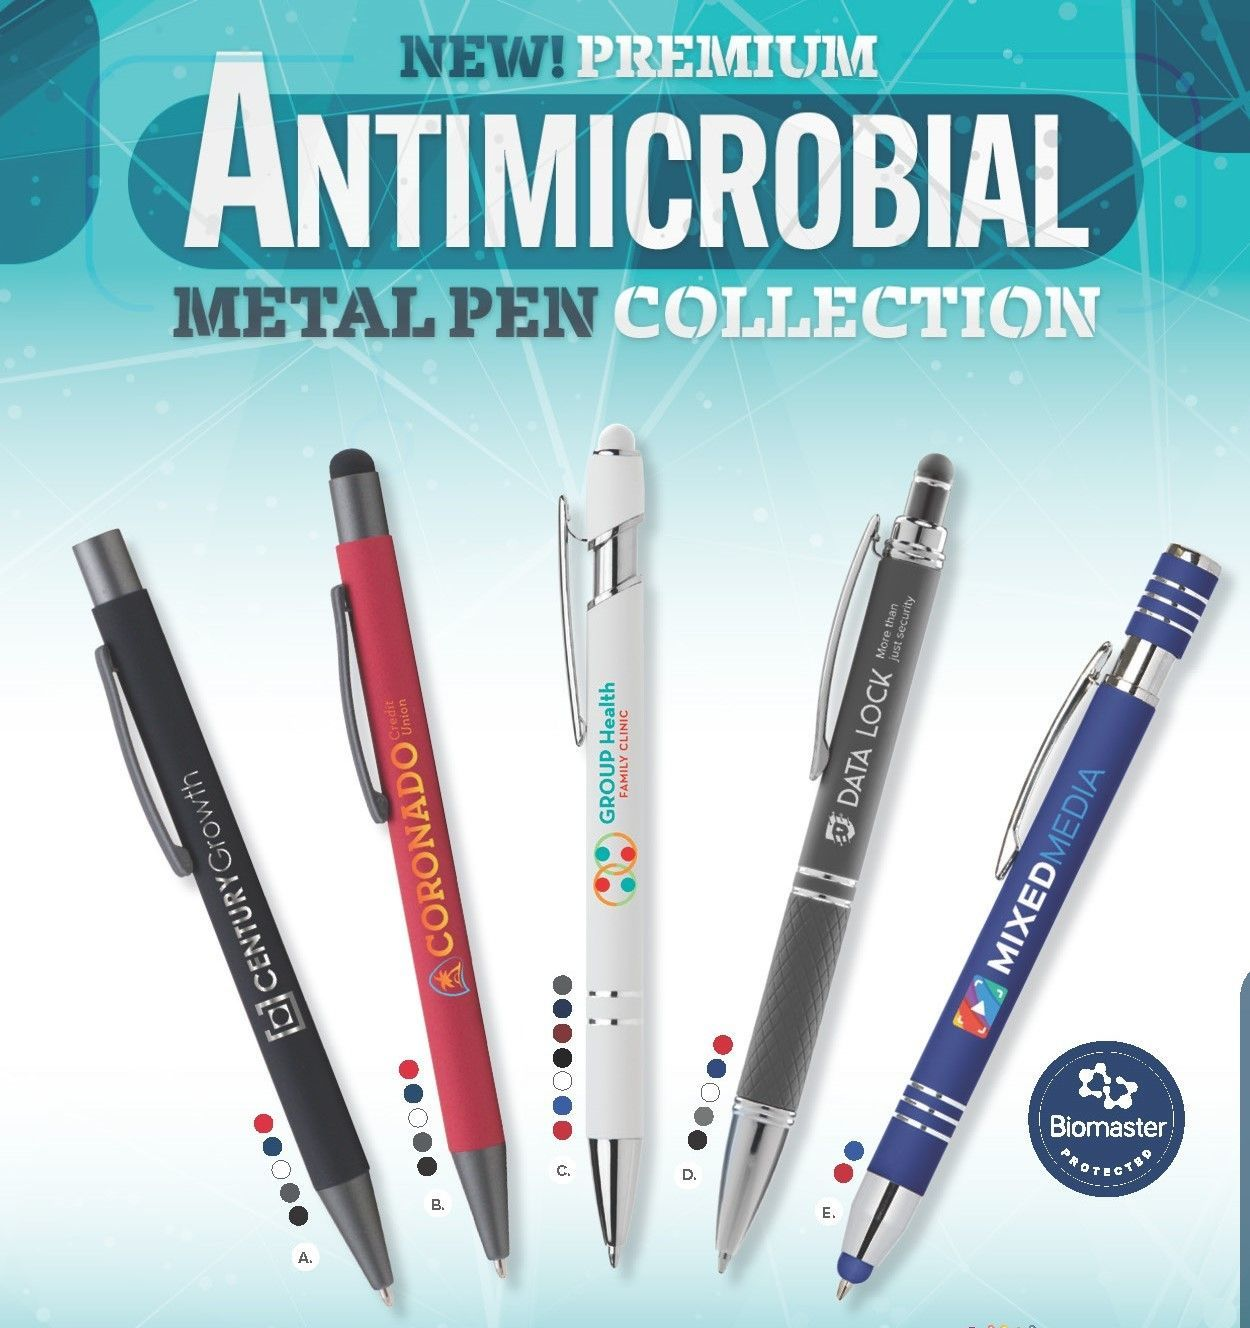 Antimicrobial Pens ON SALE!